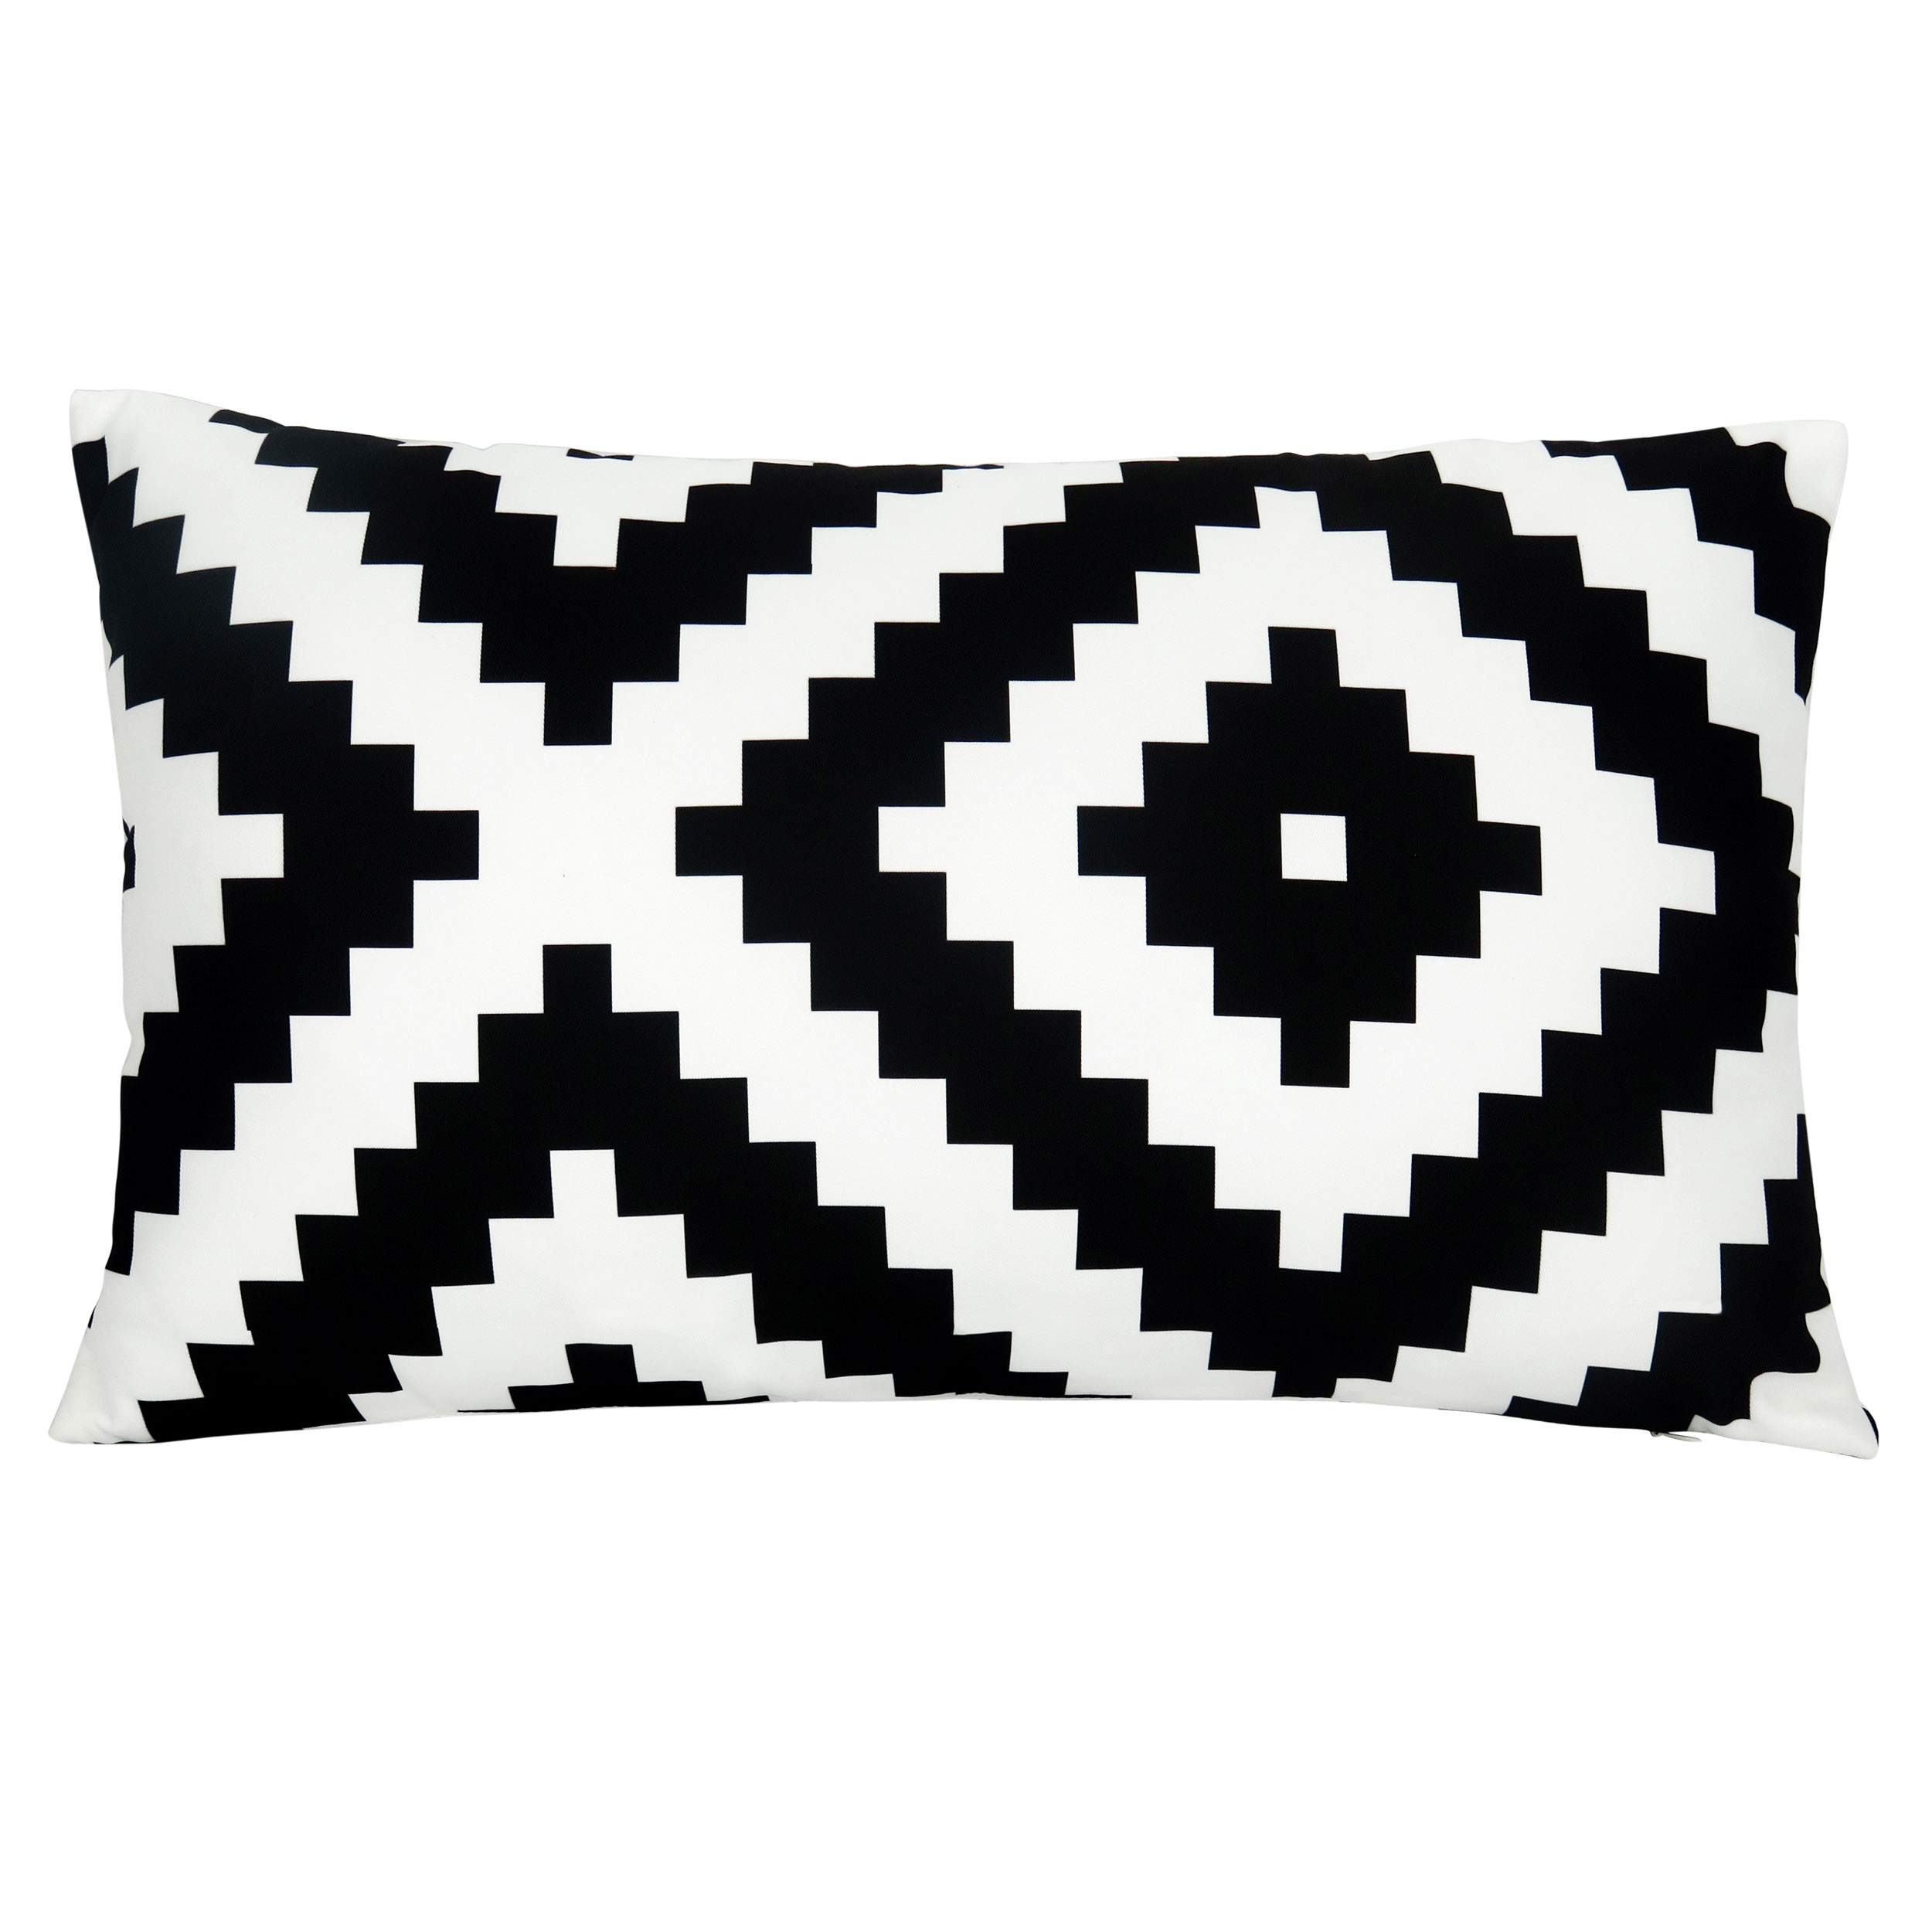 coussin black and white : choisissez les coussins black and white